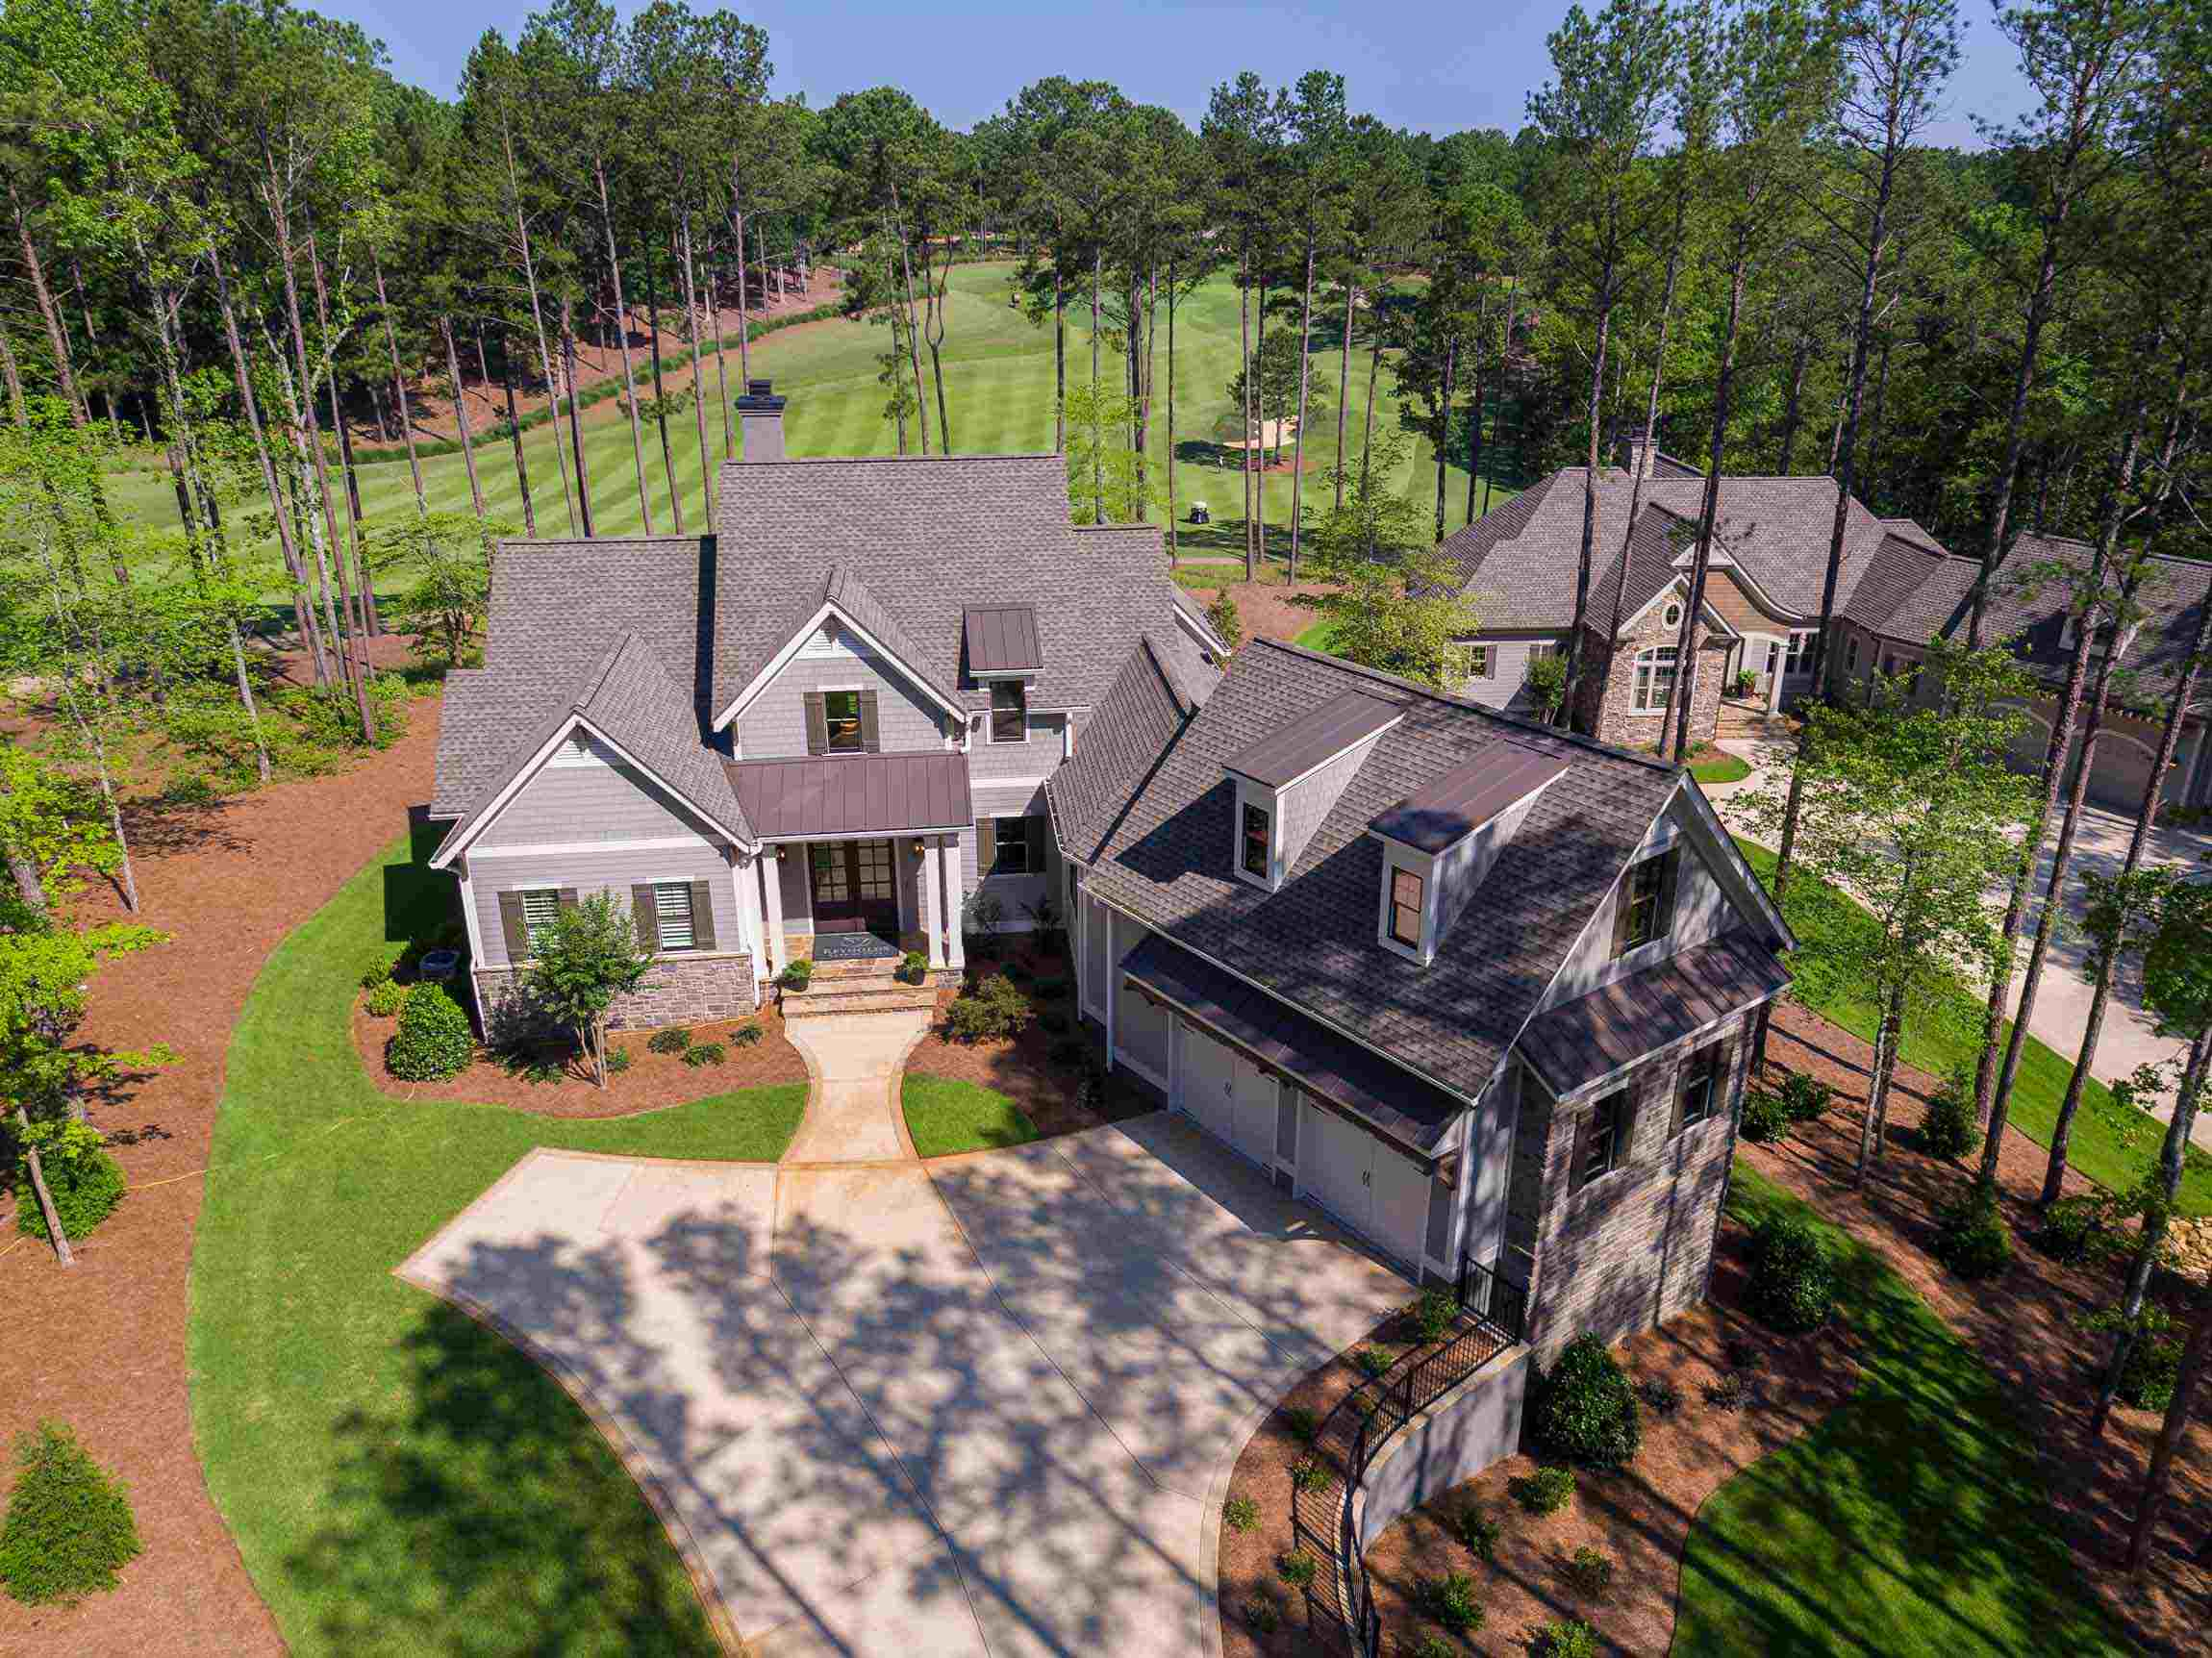 Real Estate - Golf & Lakefront Homesites & Unspoiled Natural